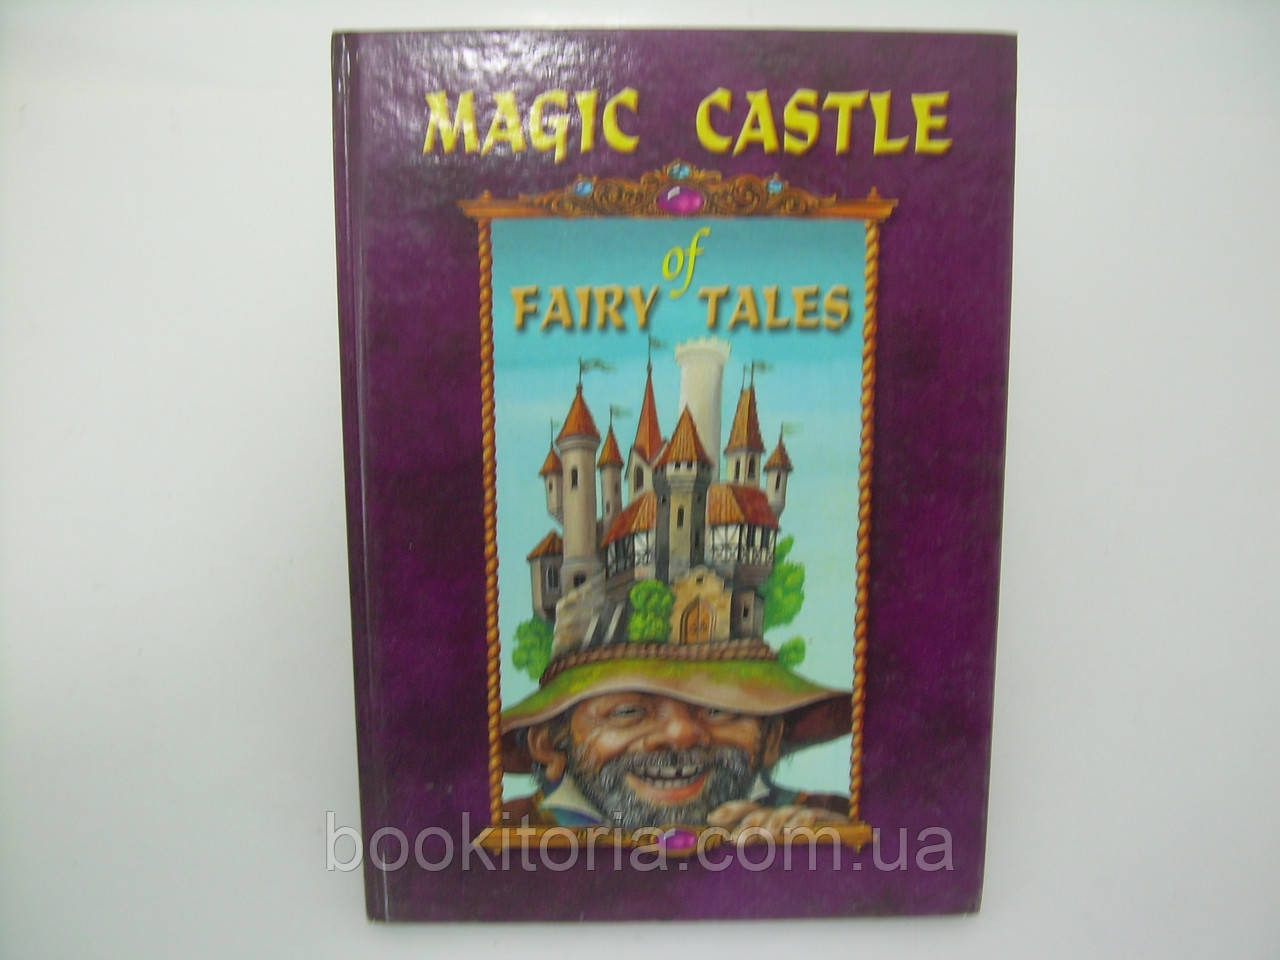 Magic castle of fairy tales (б/у).